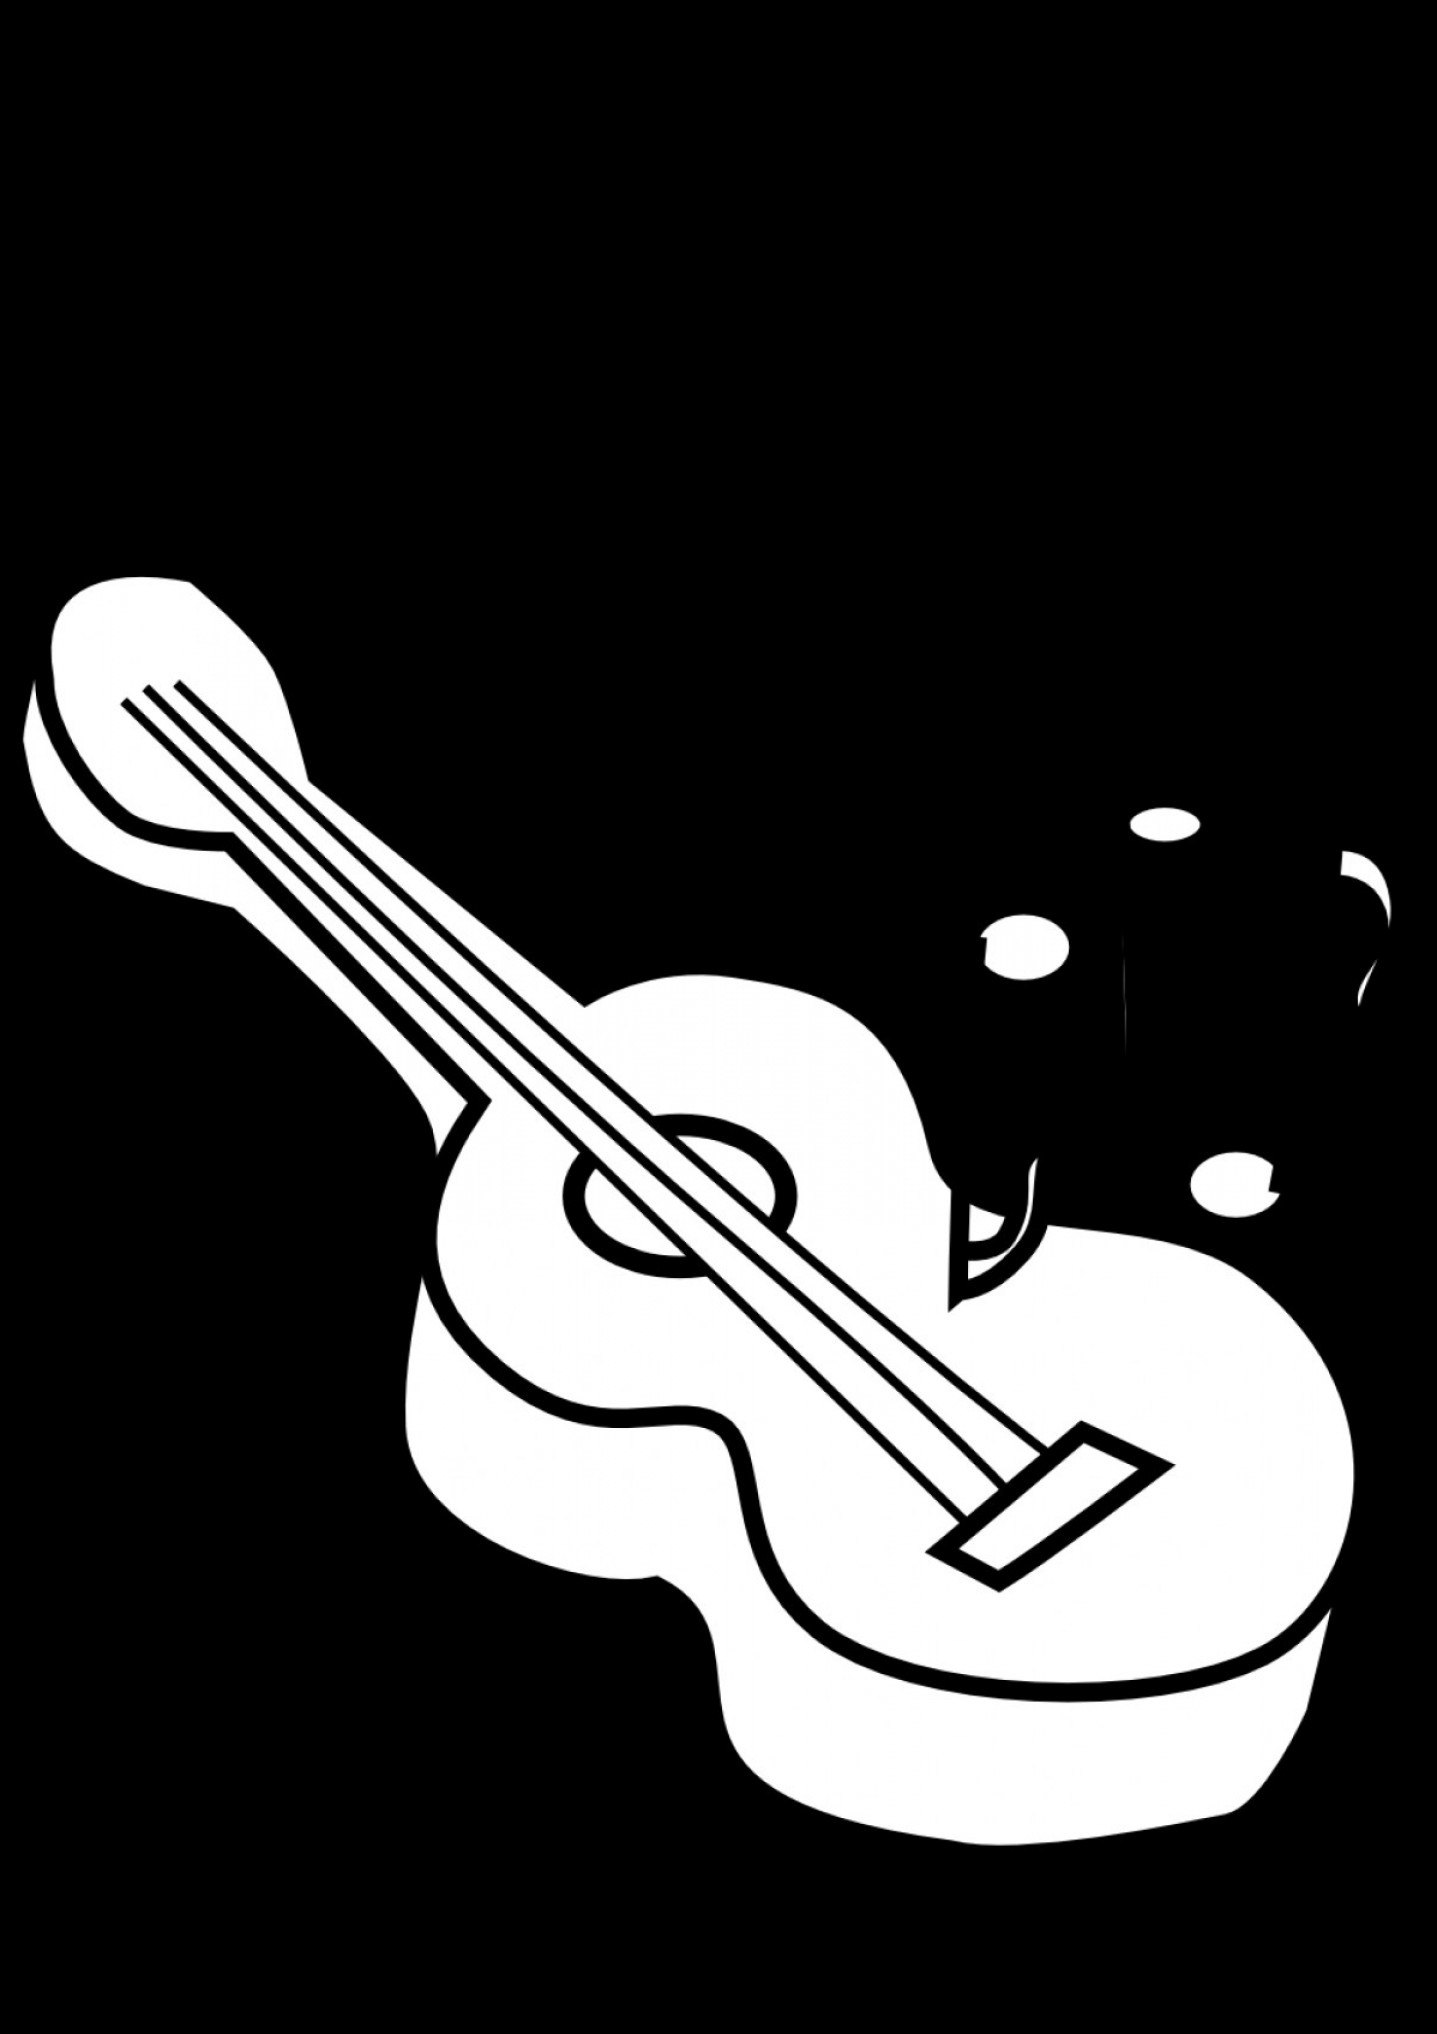 Vector Guitar Clip Art Black And White: Guitar Clip Art Black And White